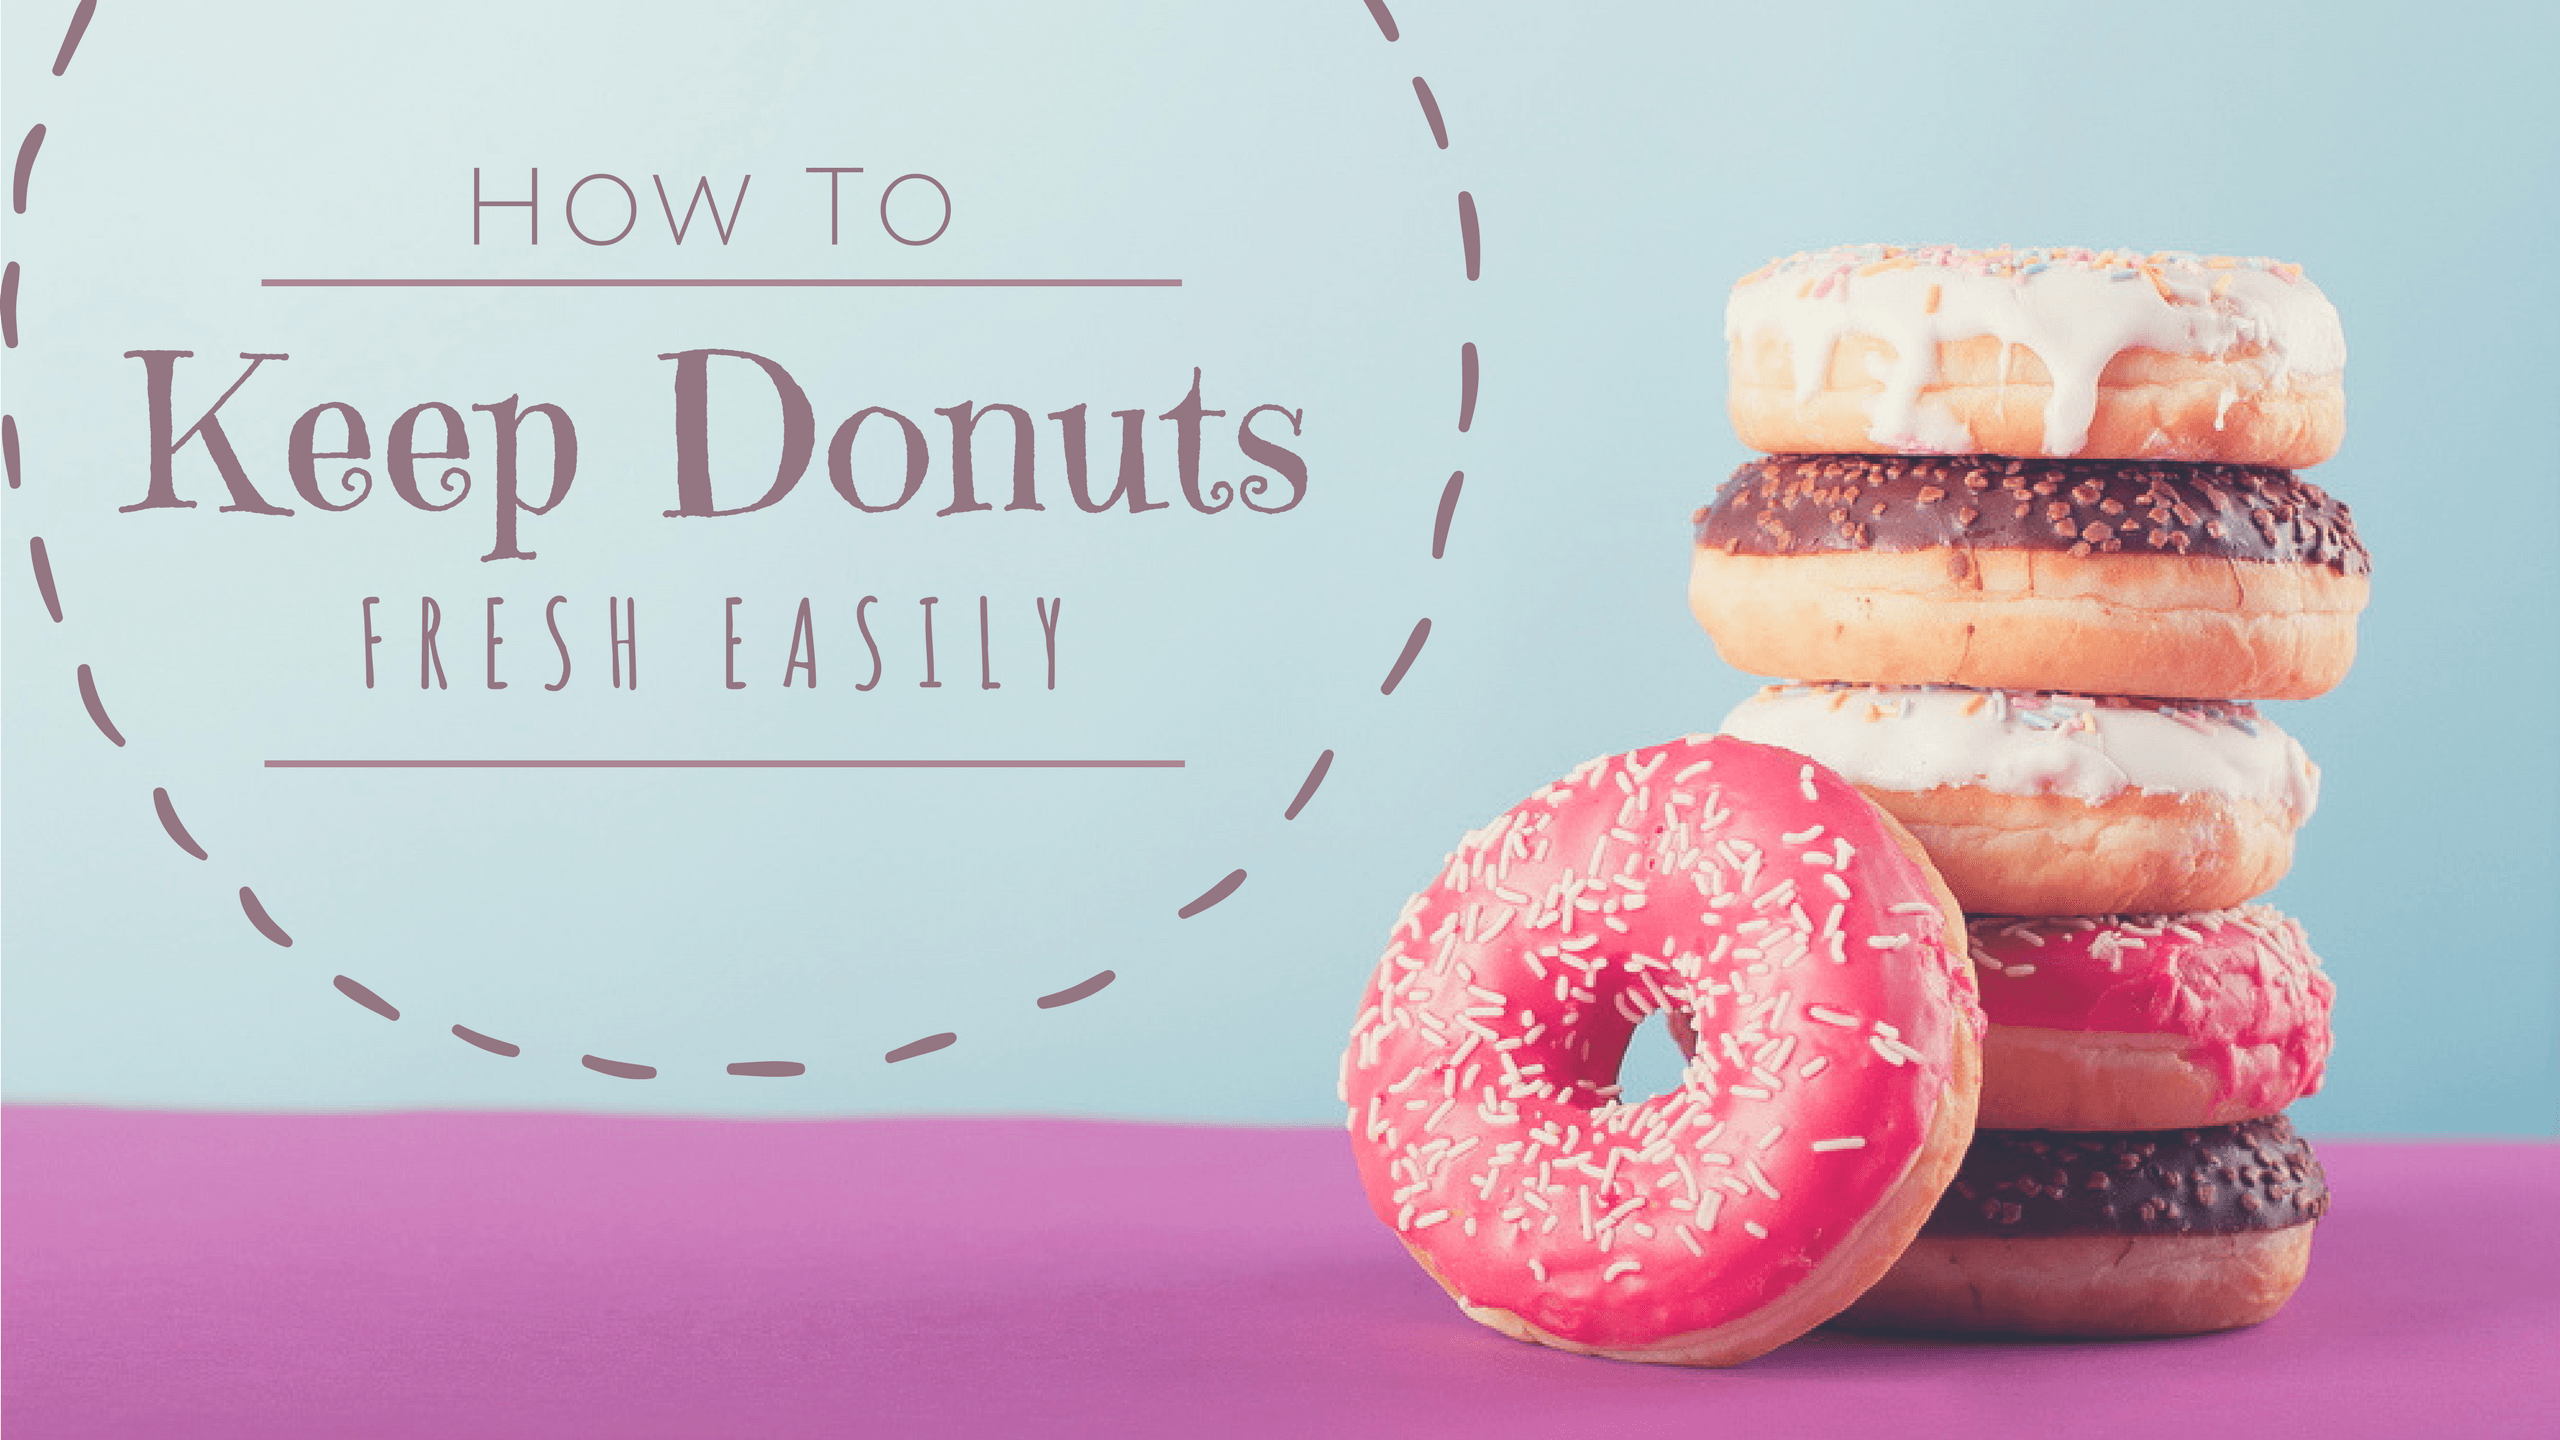 How to keep donuts fresh?